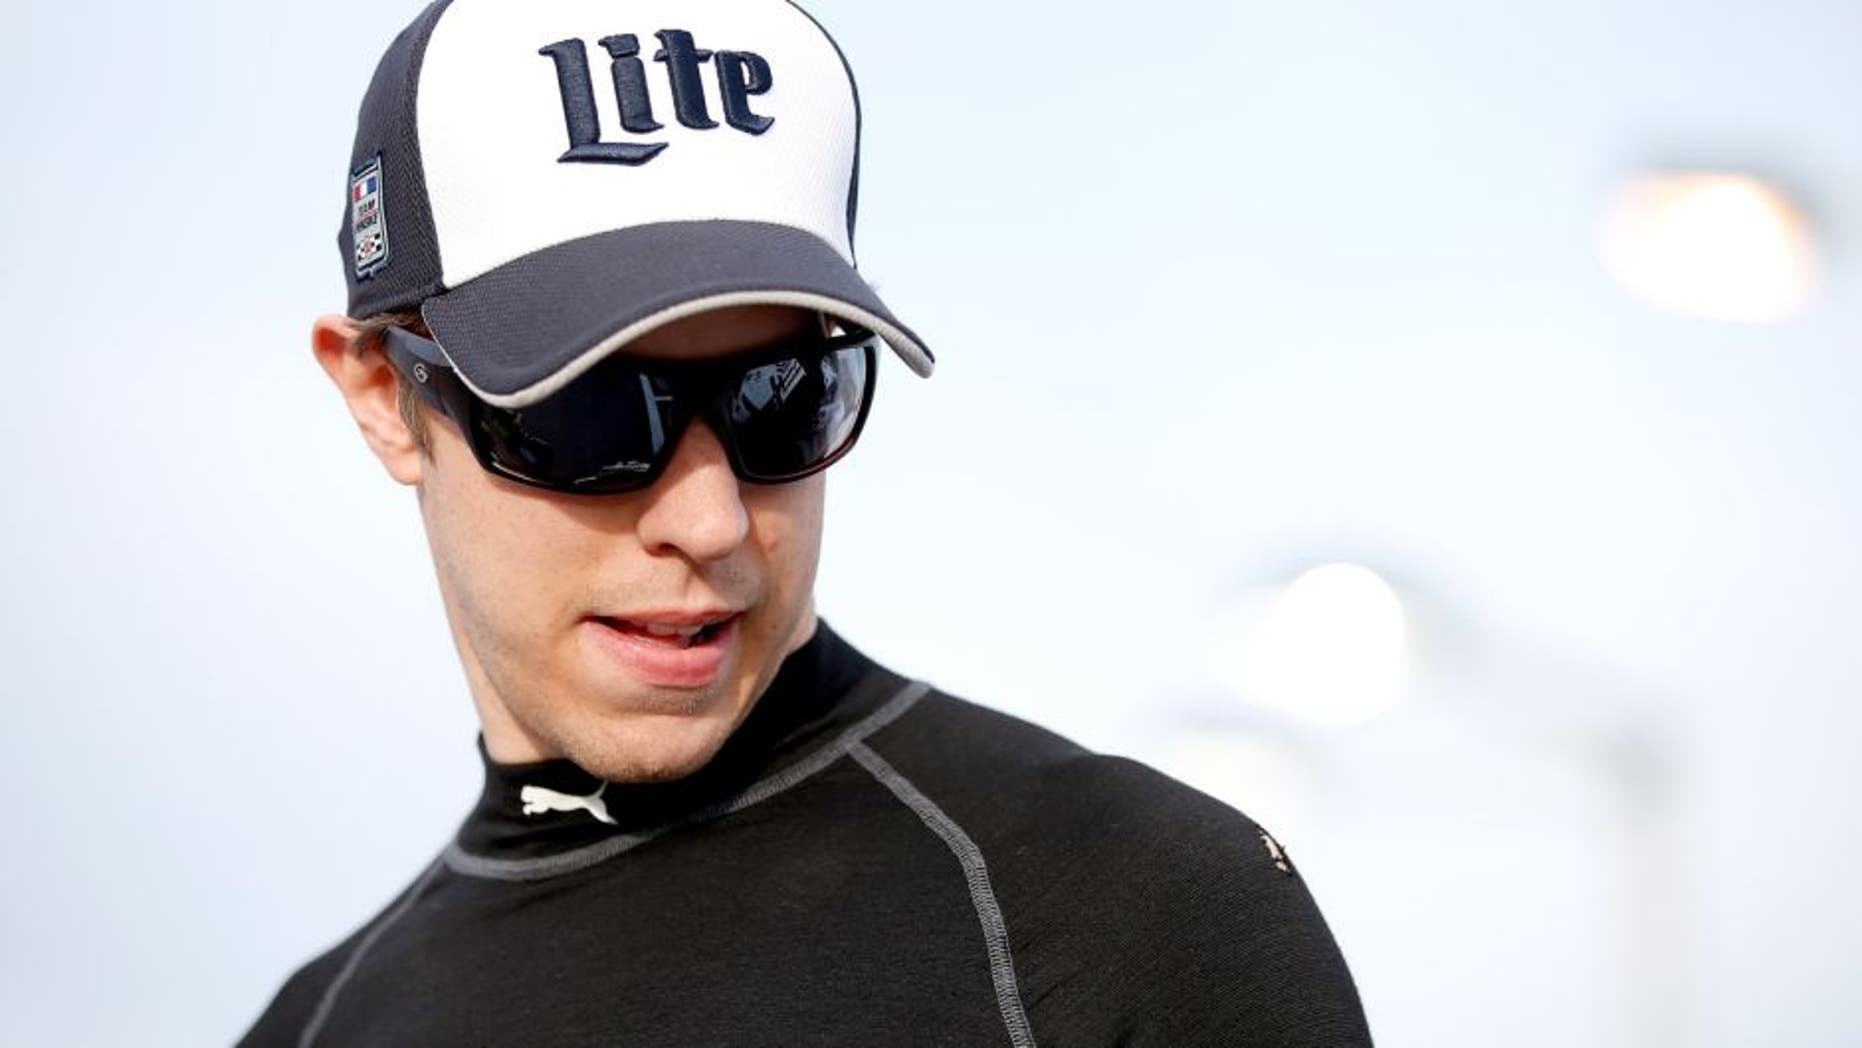 LAS VEGAS, NV - MARCH 04: Brad Keselowski, driver of the #2 Miller Lite Ford, stands on pit row during qualifying for the NASCAR Sprint Cup Series Kobalt 400 at Las Vegas Motor Speedway on March 4, 2016 in Las Vegas, Nevada. (Photo by Todd Warshaw/Getty Images)